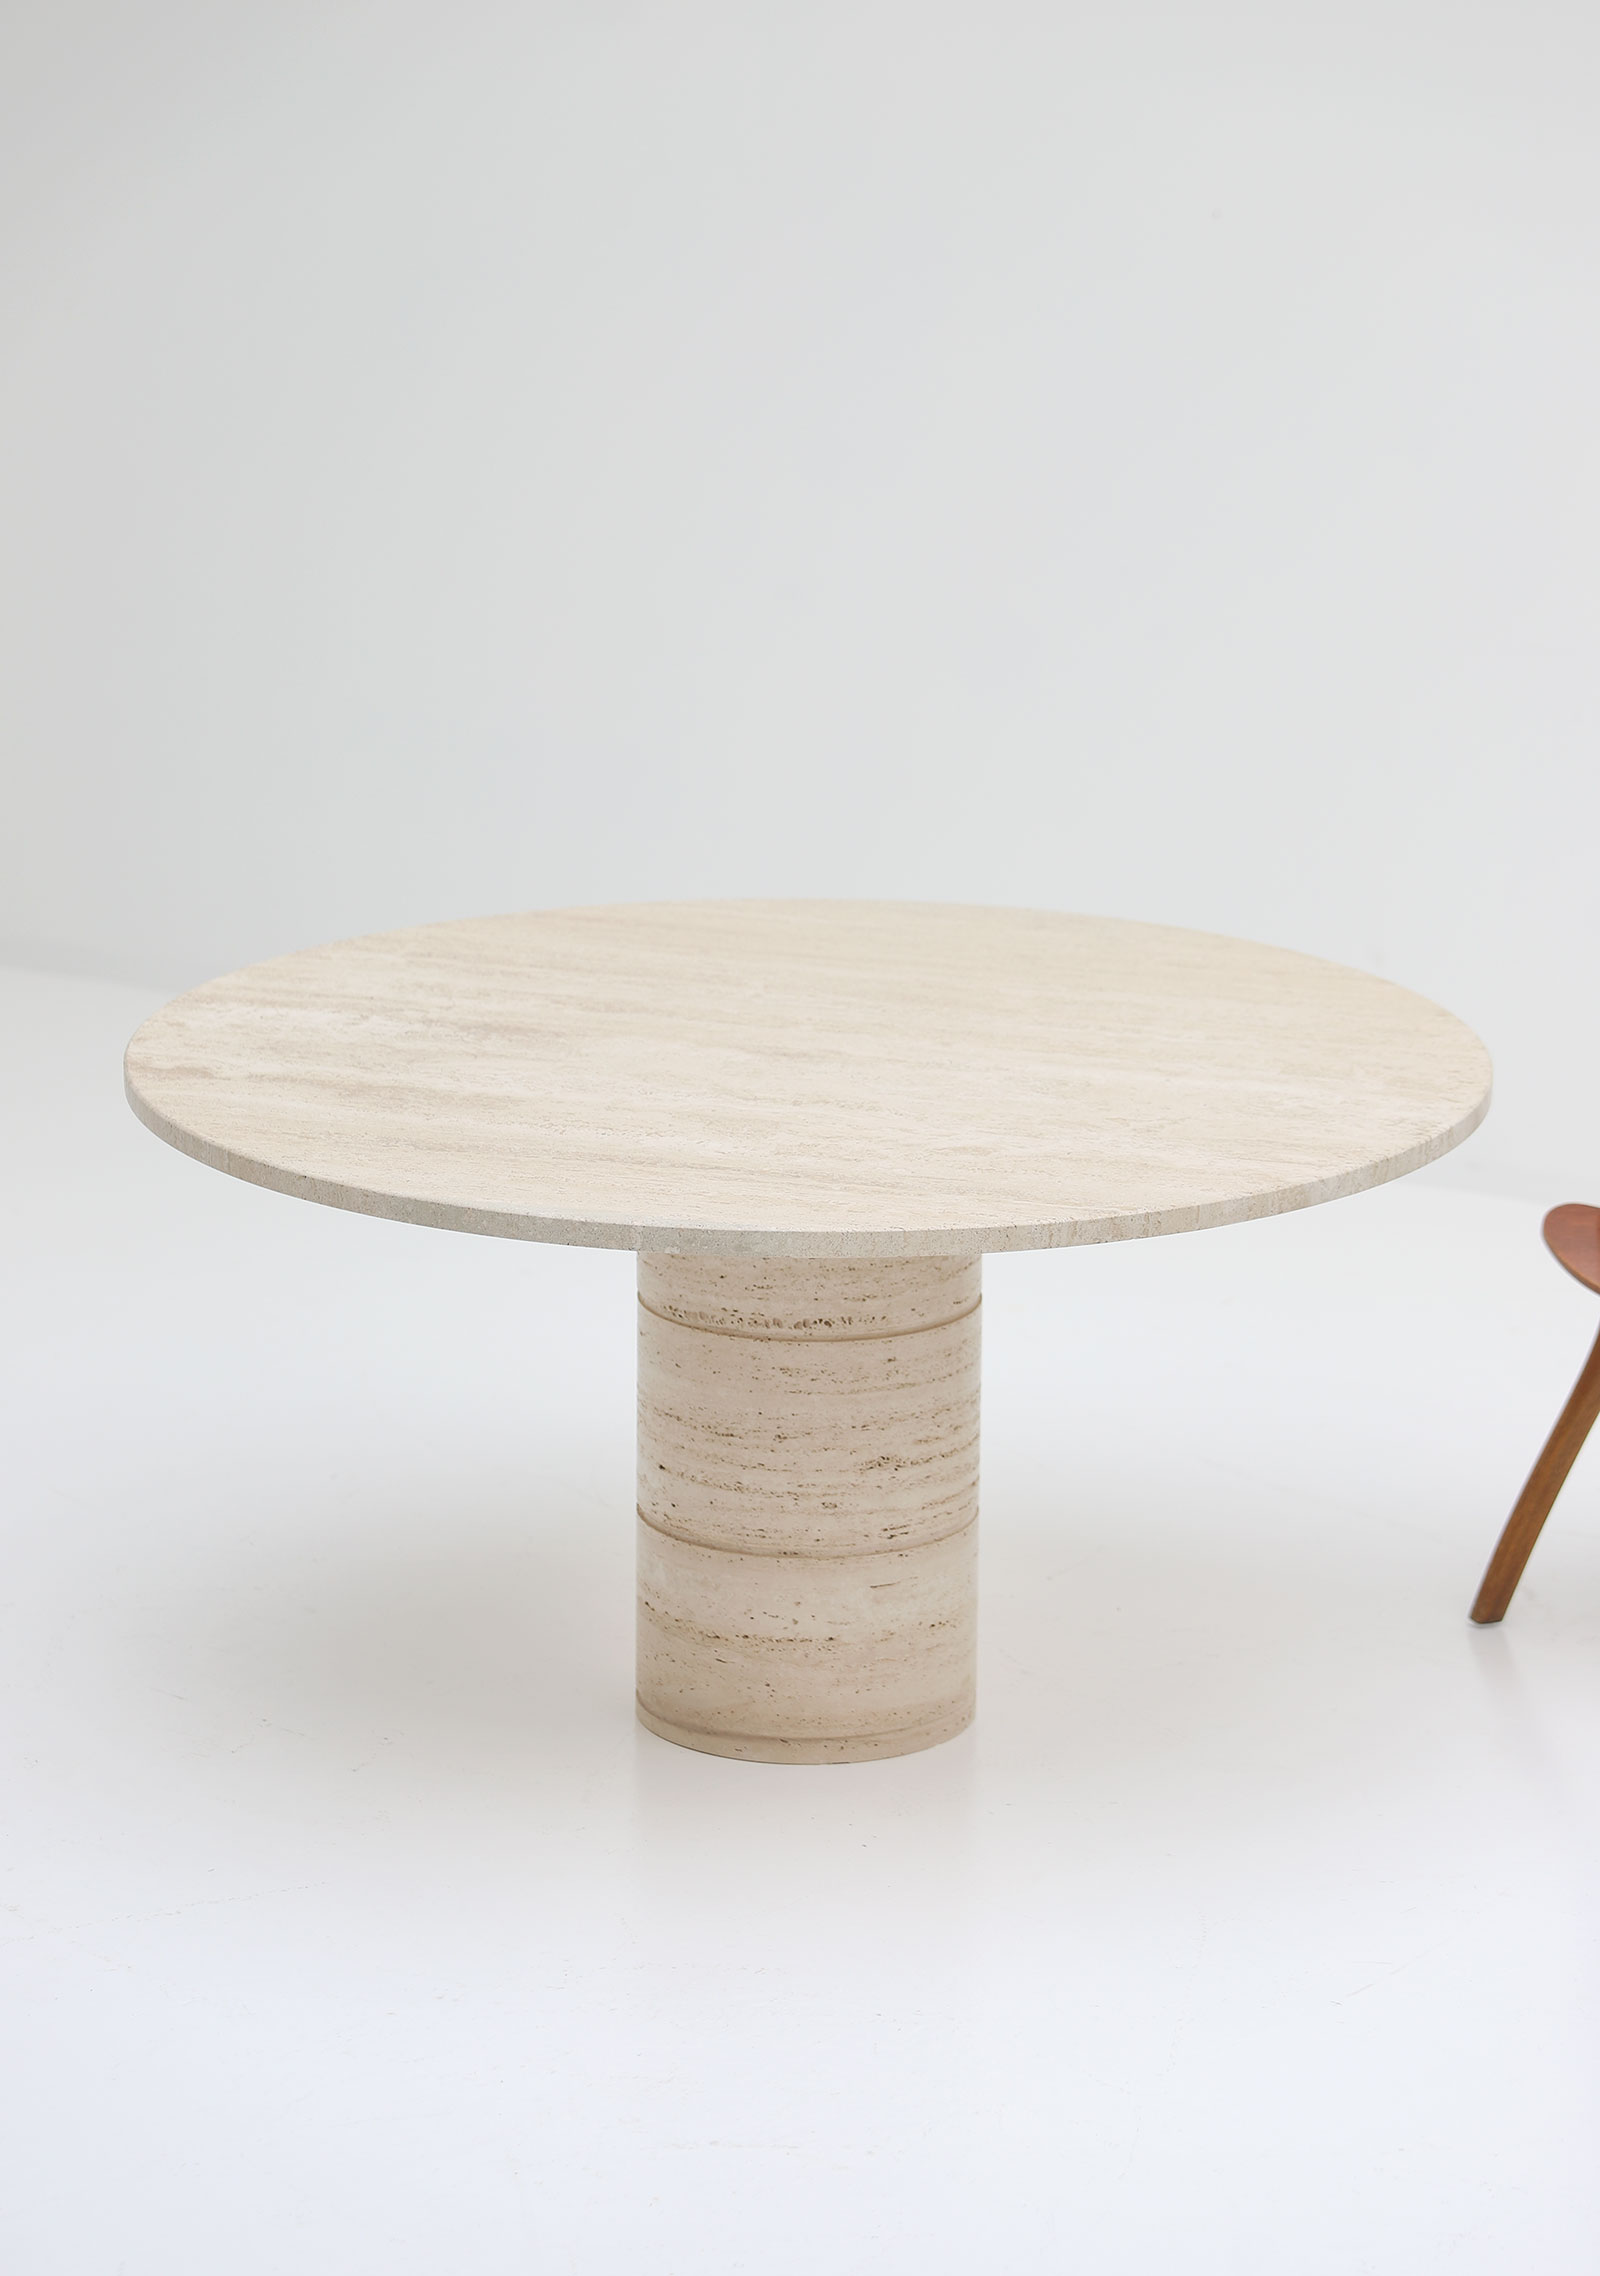 Up&Up Travertine Round Pedestal Dining Table image 6